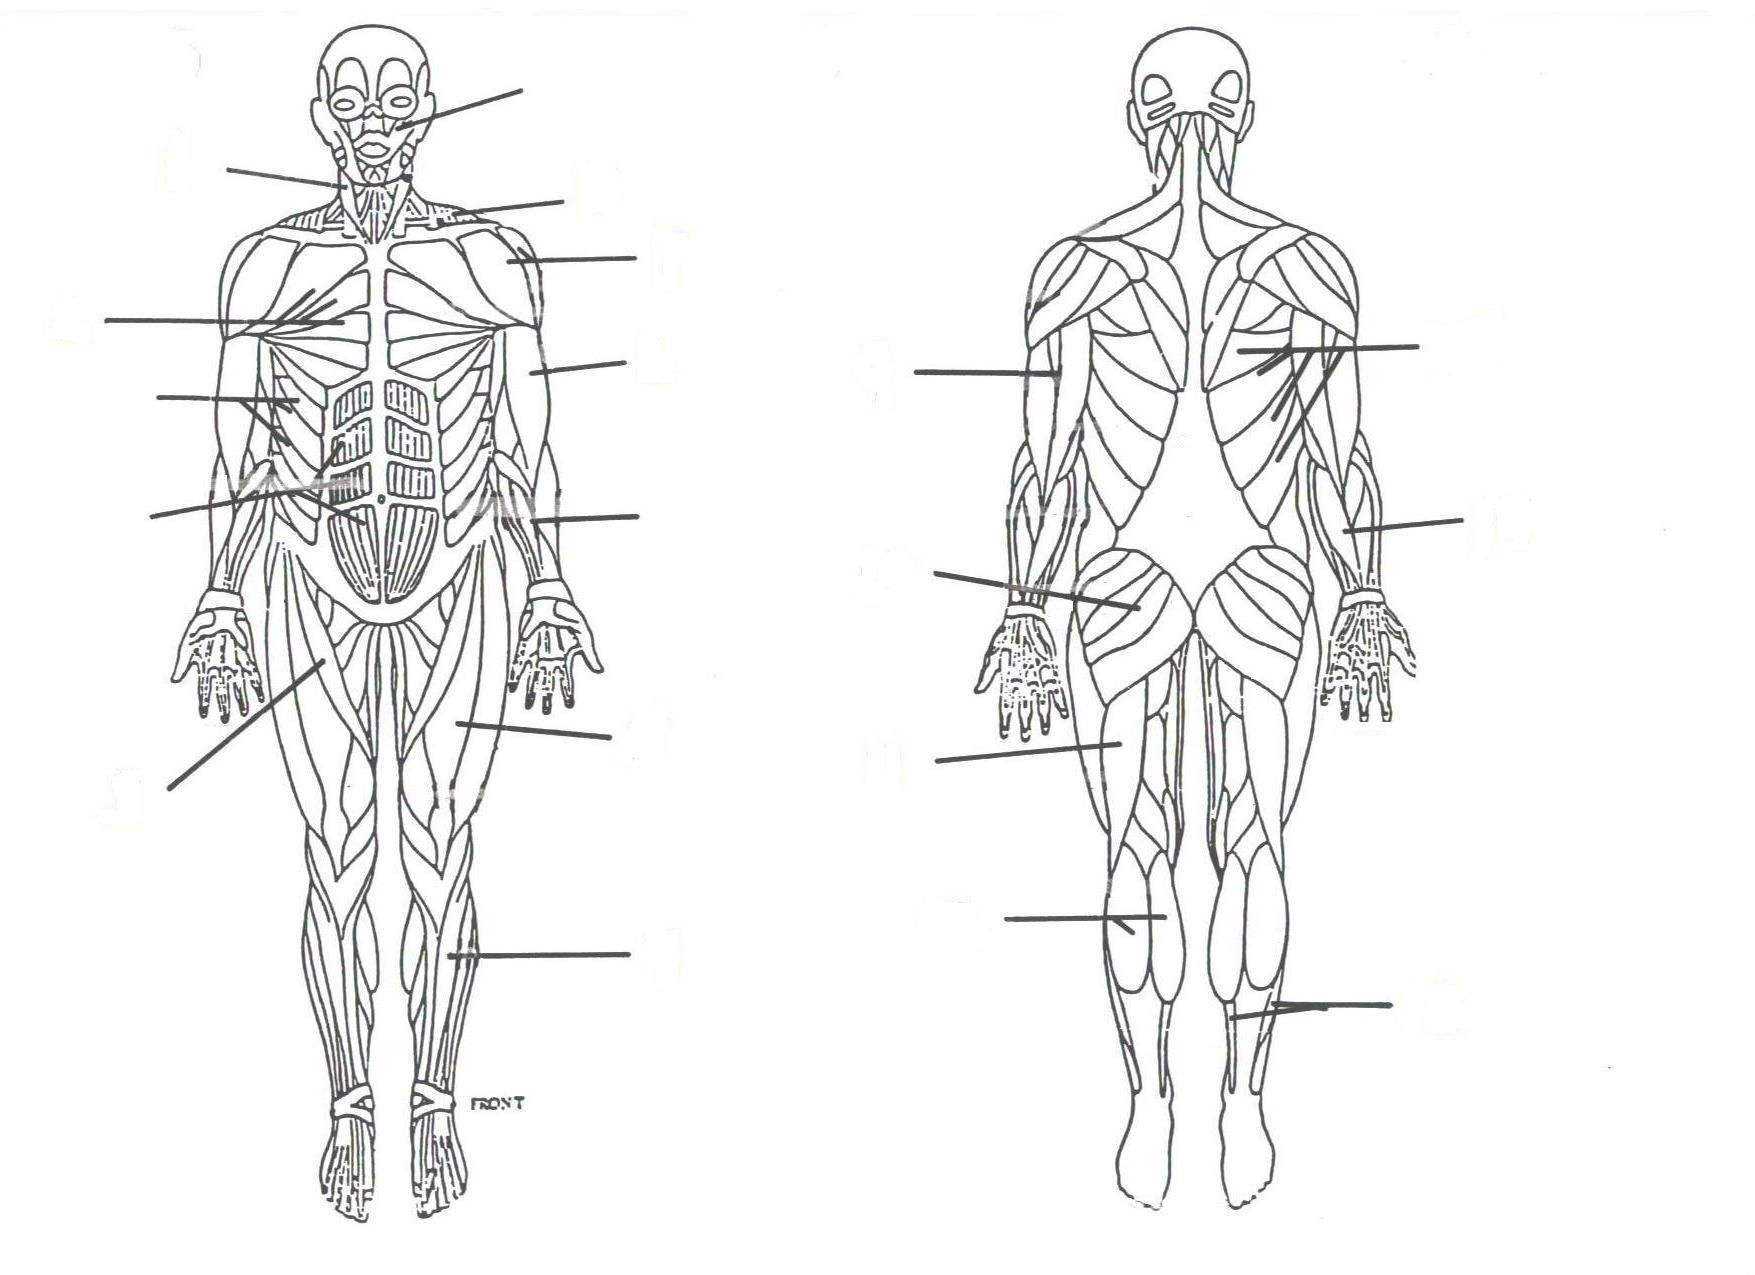 Muscle System Sketch Drawings Drawn Mussel Muscular System Pencil And In Color Drawn Mussel Muscular System Body Diagram Human Body Diagram